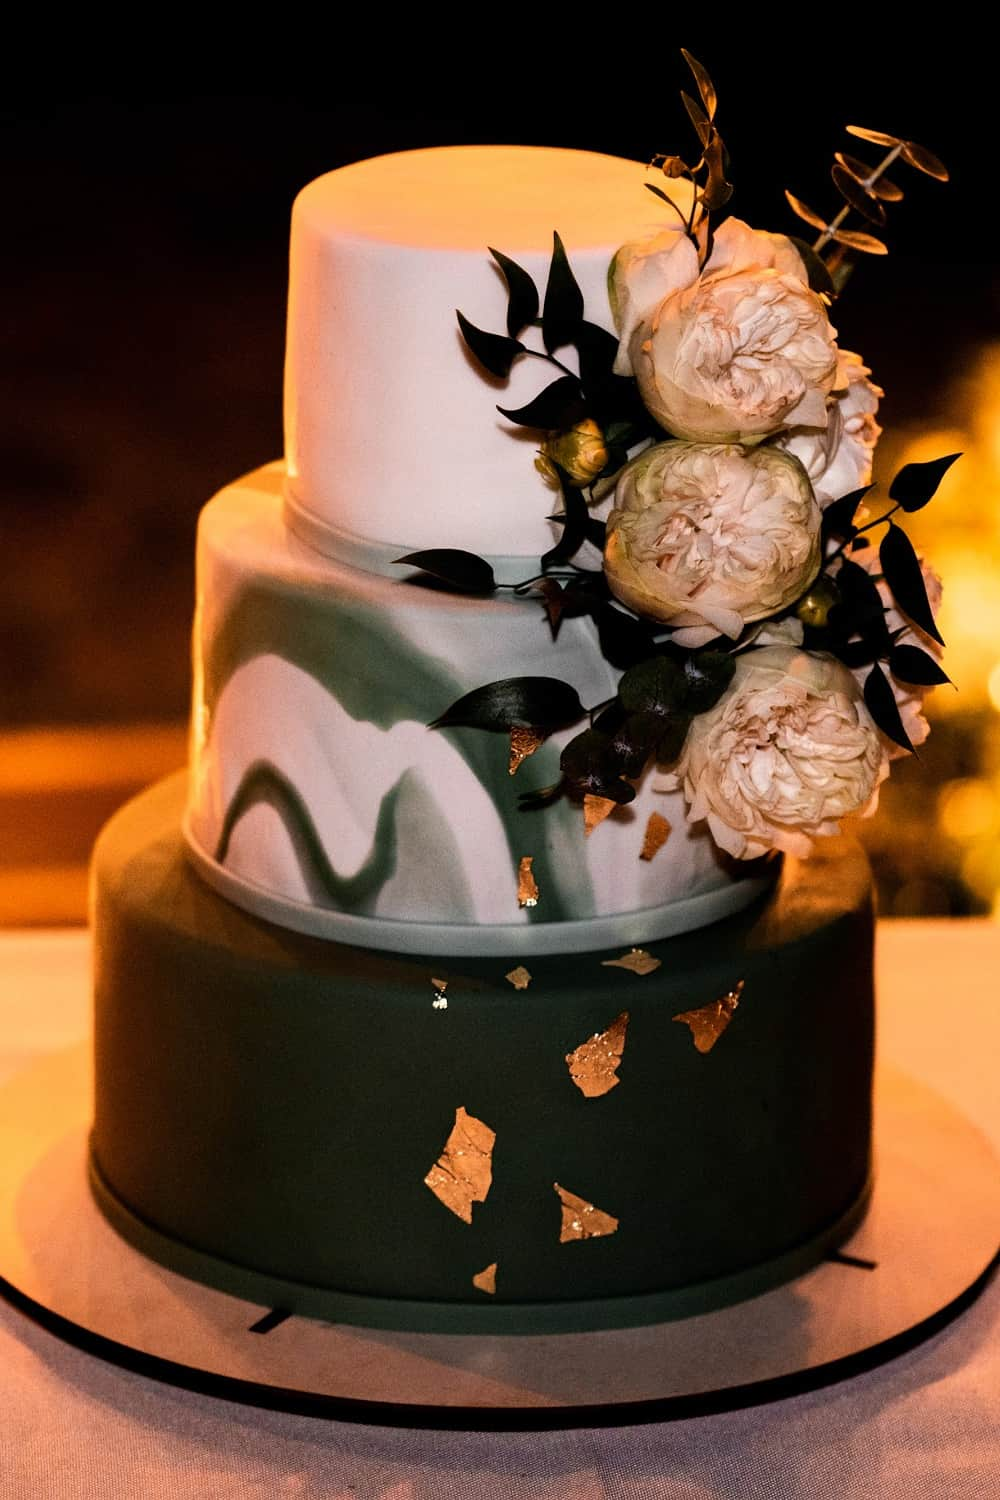 Black, white and gold wedding cake with vintage rose decorations.